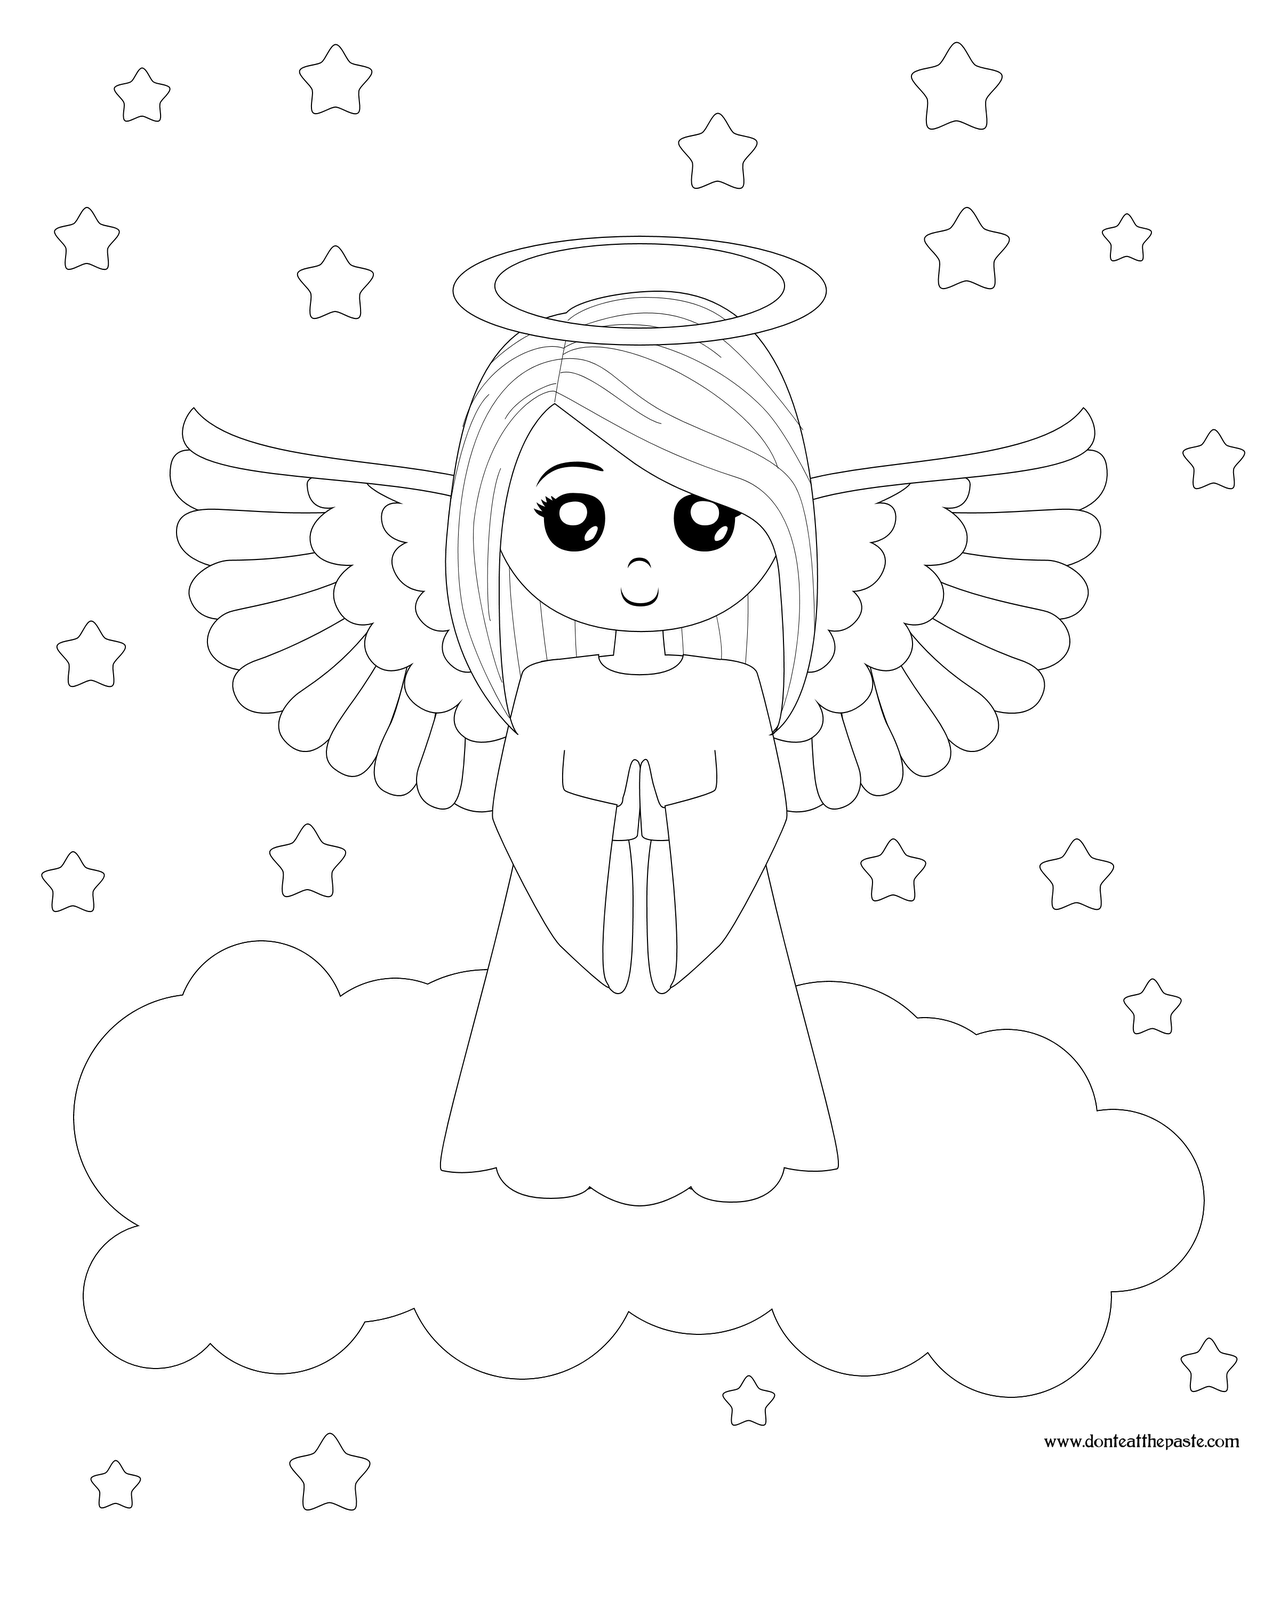 Angel Child Drawing At Getdrawings